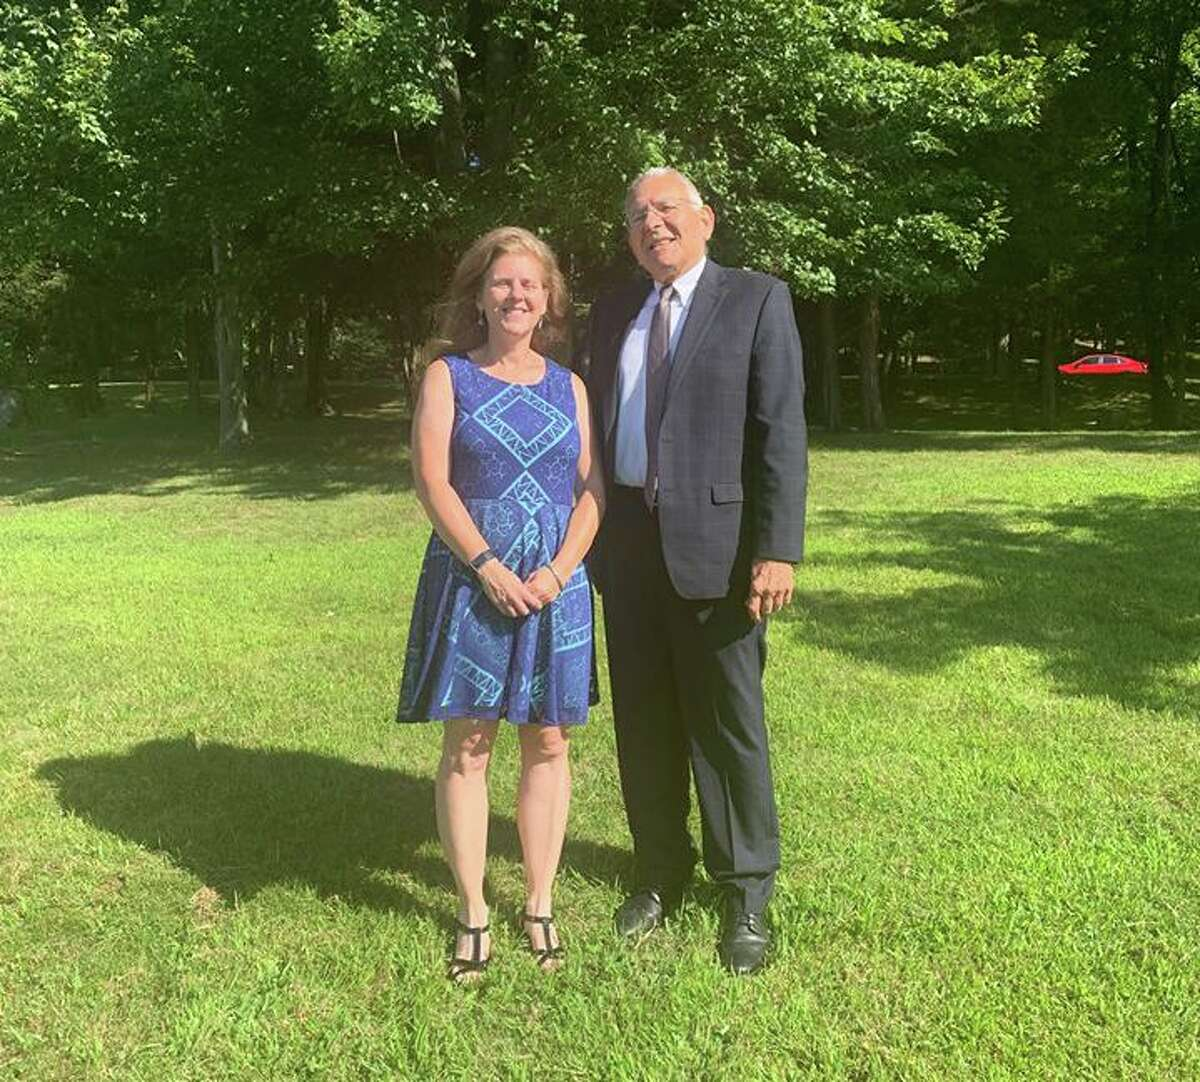 Trumbull's Teacher of the Year Lisa Cerulli, with Schools Superintendent Gary Cialfi. Cerulli, a social studies teacher at Madison Middle School, now moves on to the statewide Teacher of the Year competition.